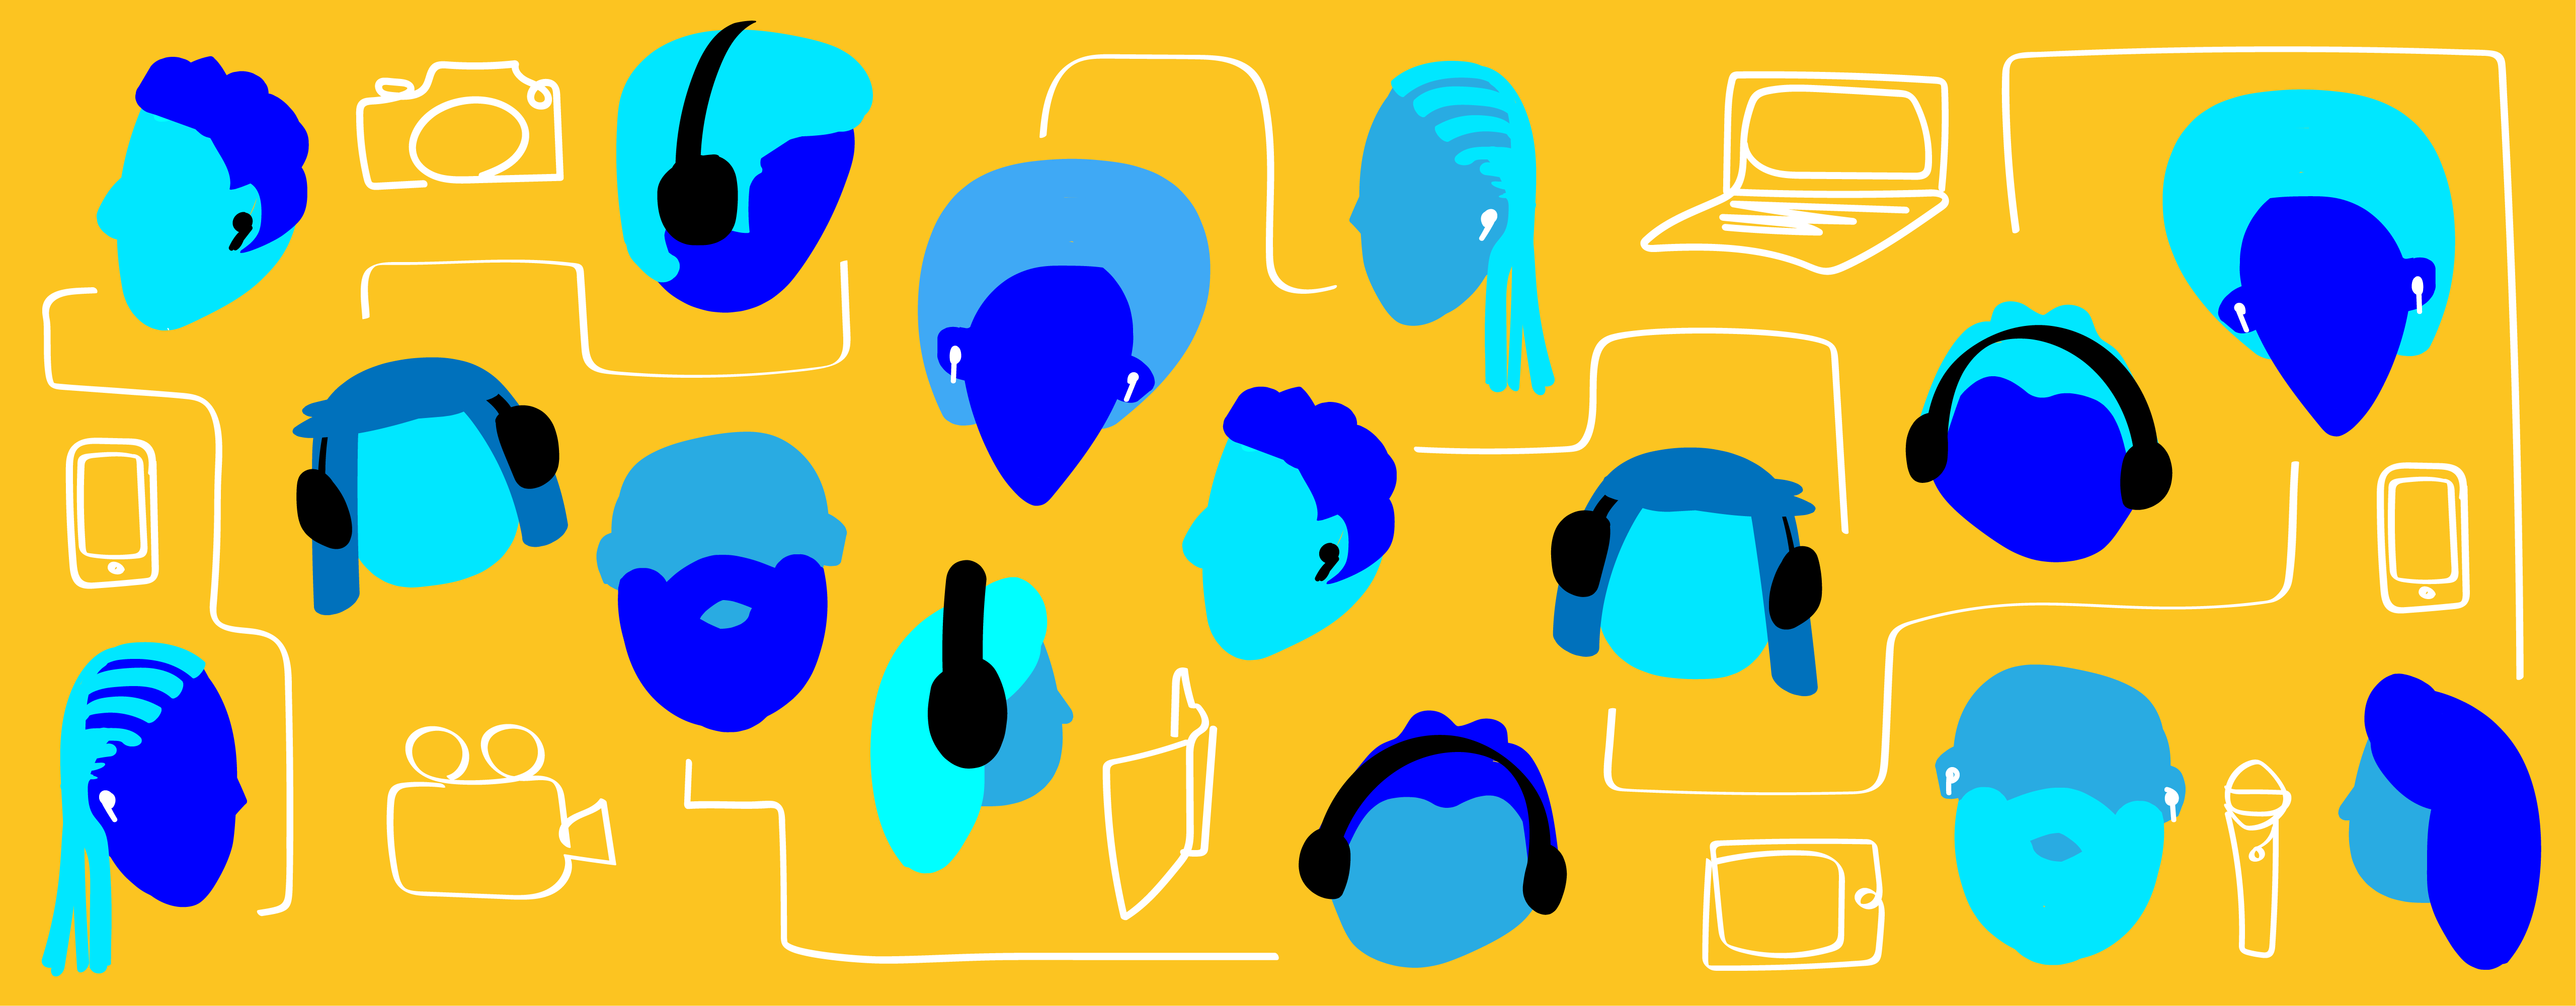 Graphic showing heads, some wearing headphones, and various devices such as phones, computers, and tablets